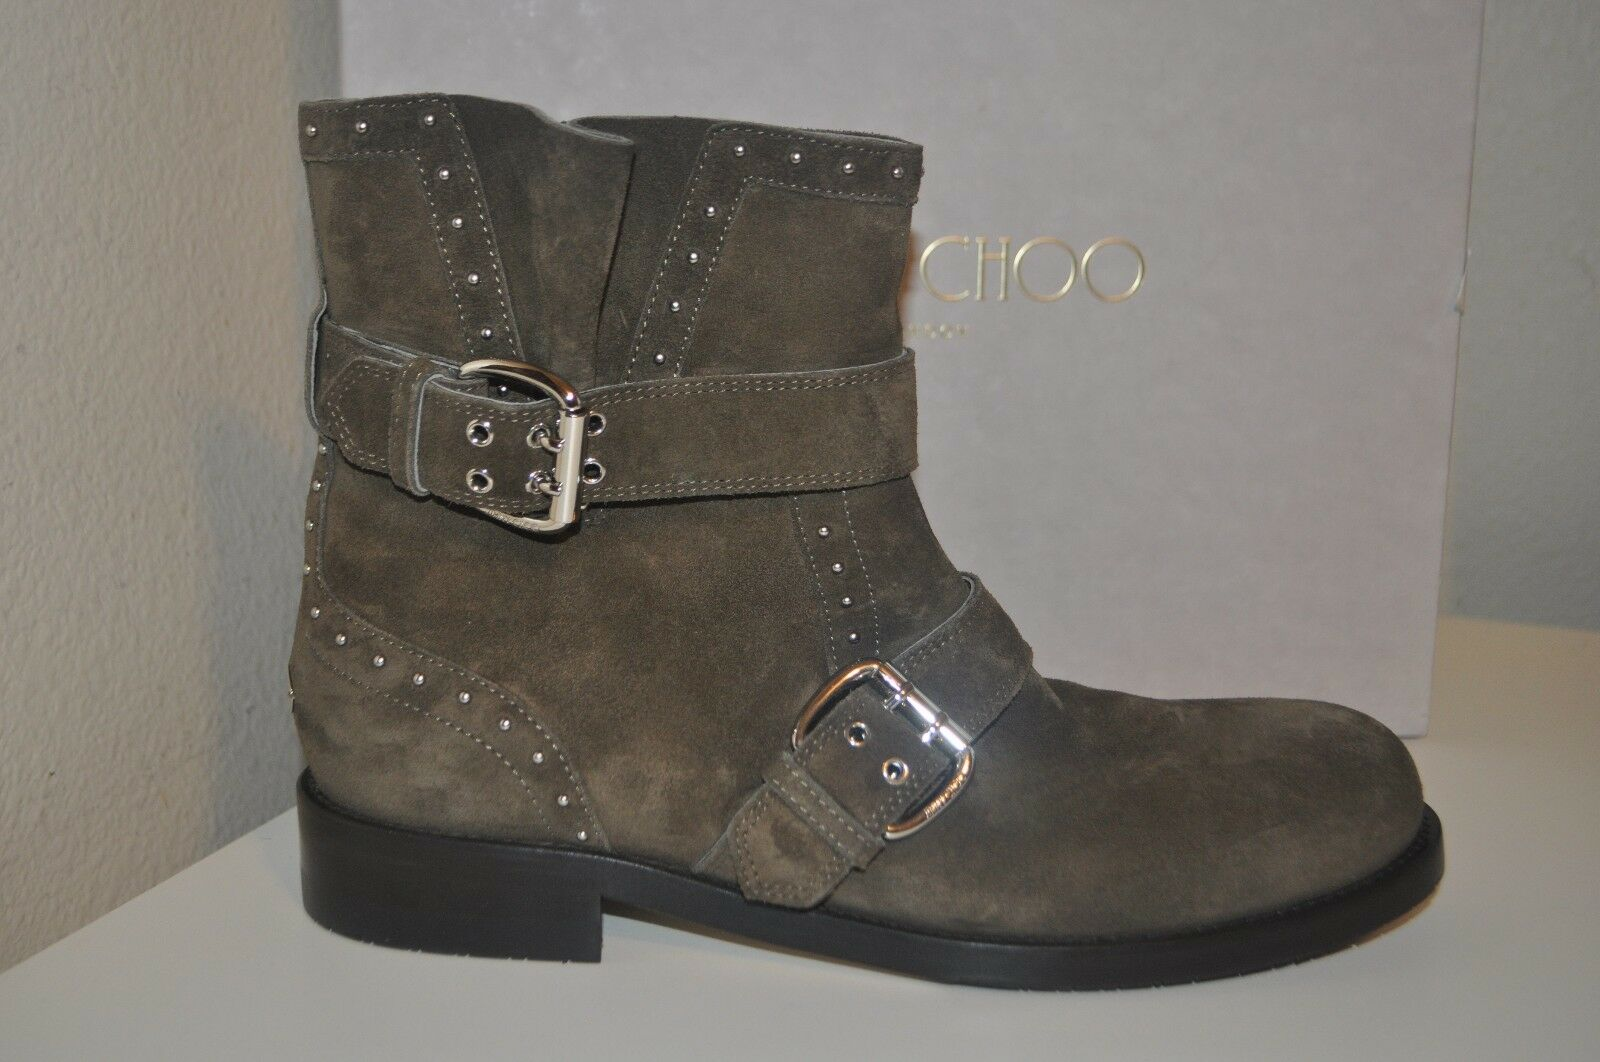 NIB $1,395+ Jimmy Choo Blyss Studded Suede Ankle Bootie Boot Suede Mink 39 - 9